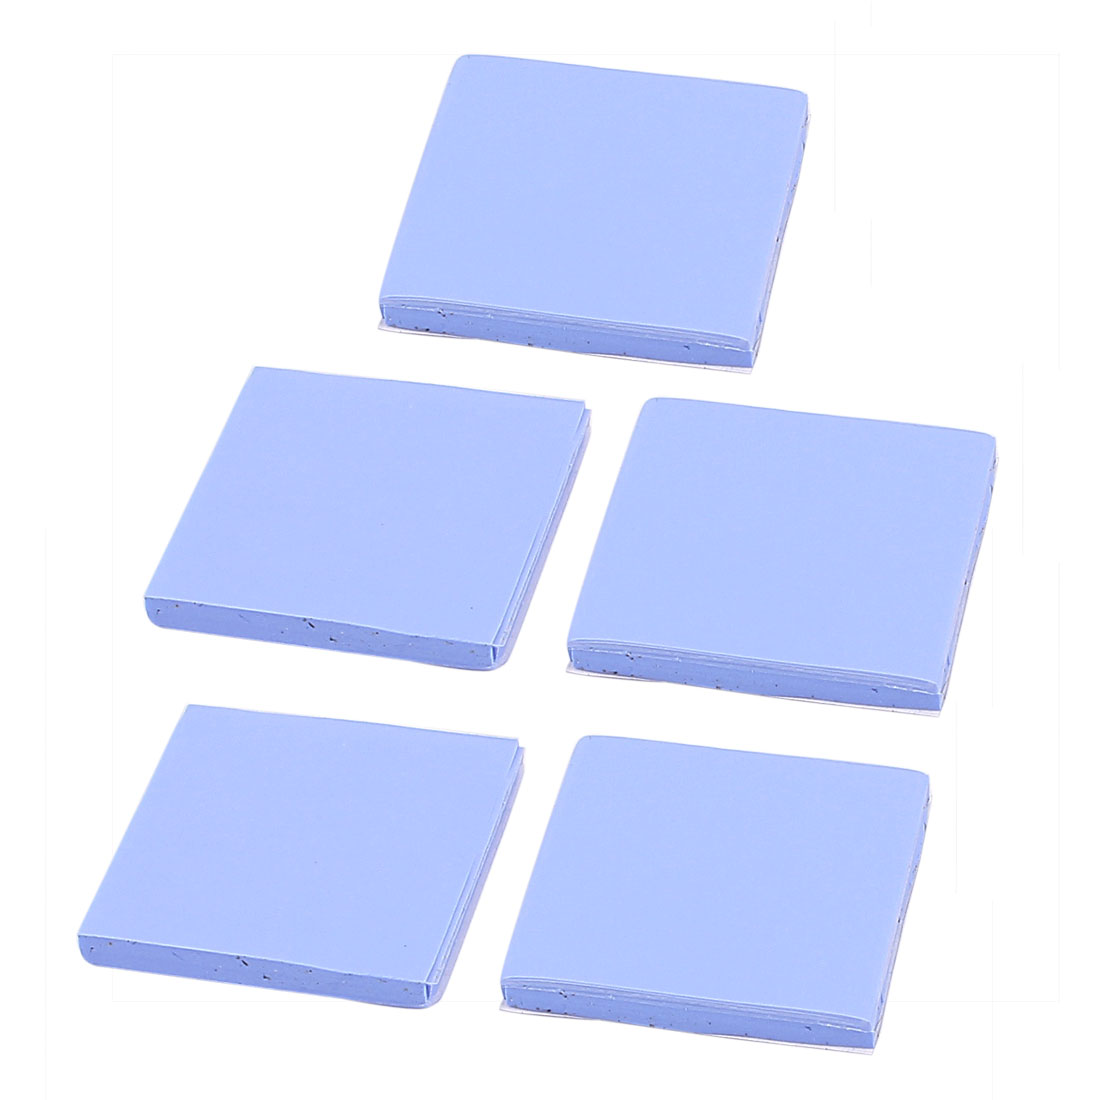 5 Pcs Blue Thermal Pad GPU CPU Heatsink Cooling Conductive Silicone 30mmx30mmx2mm